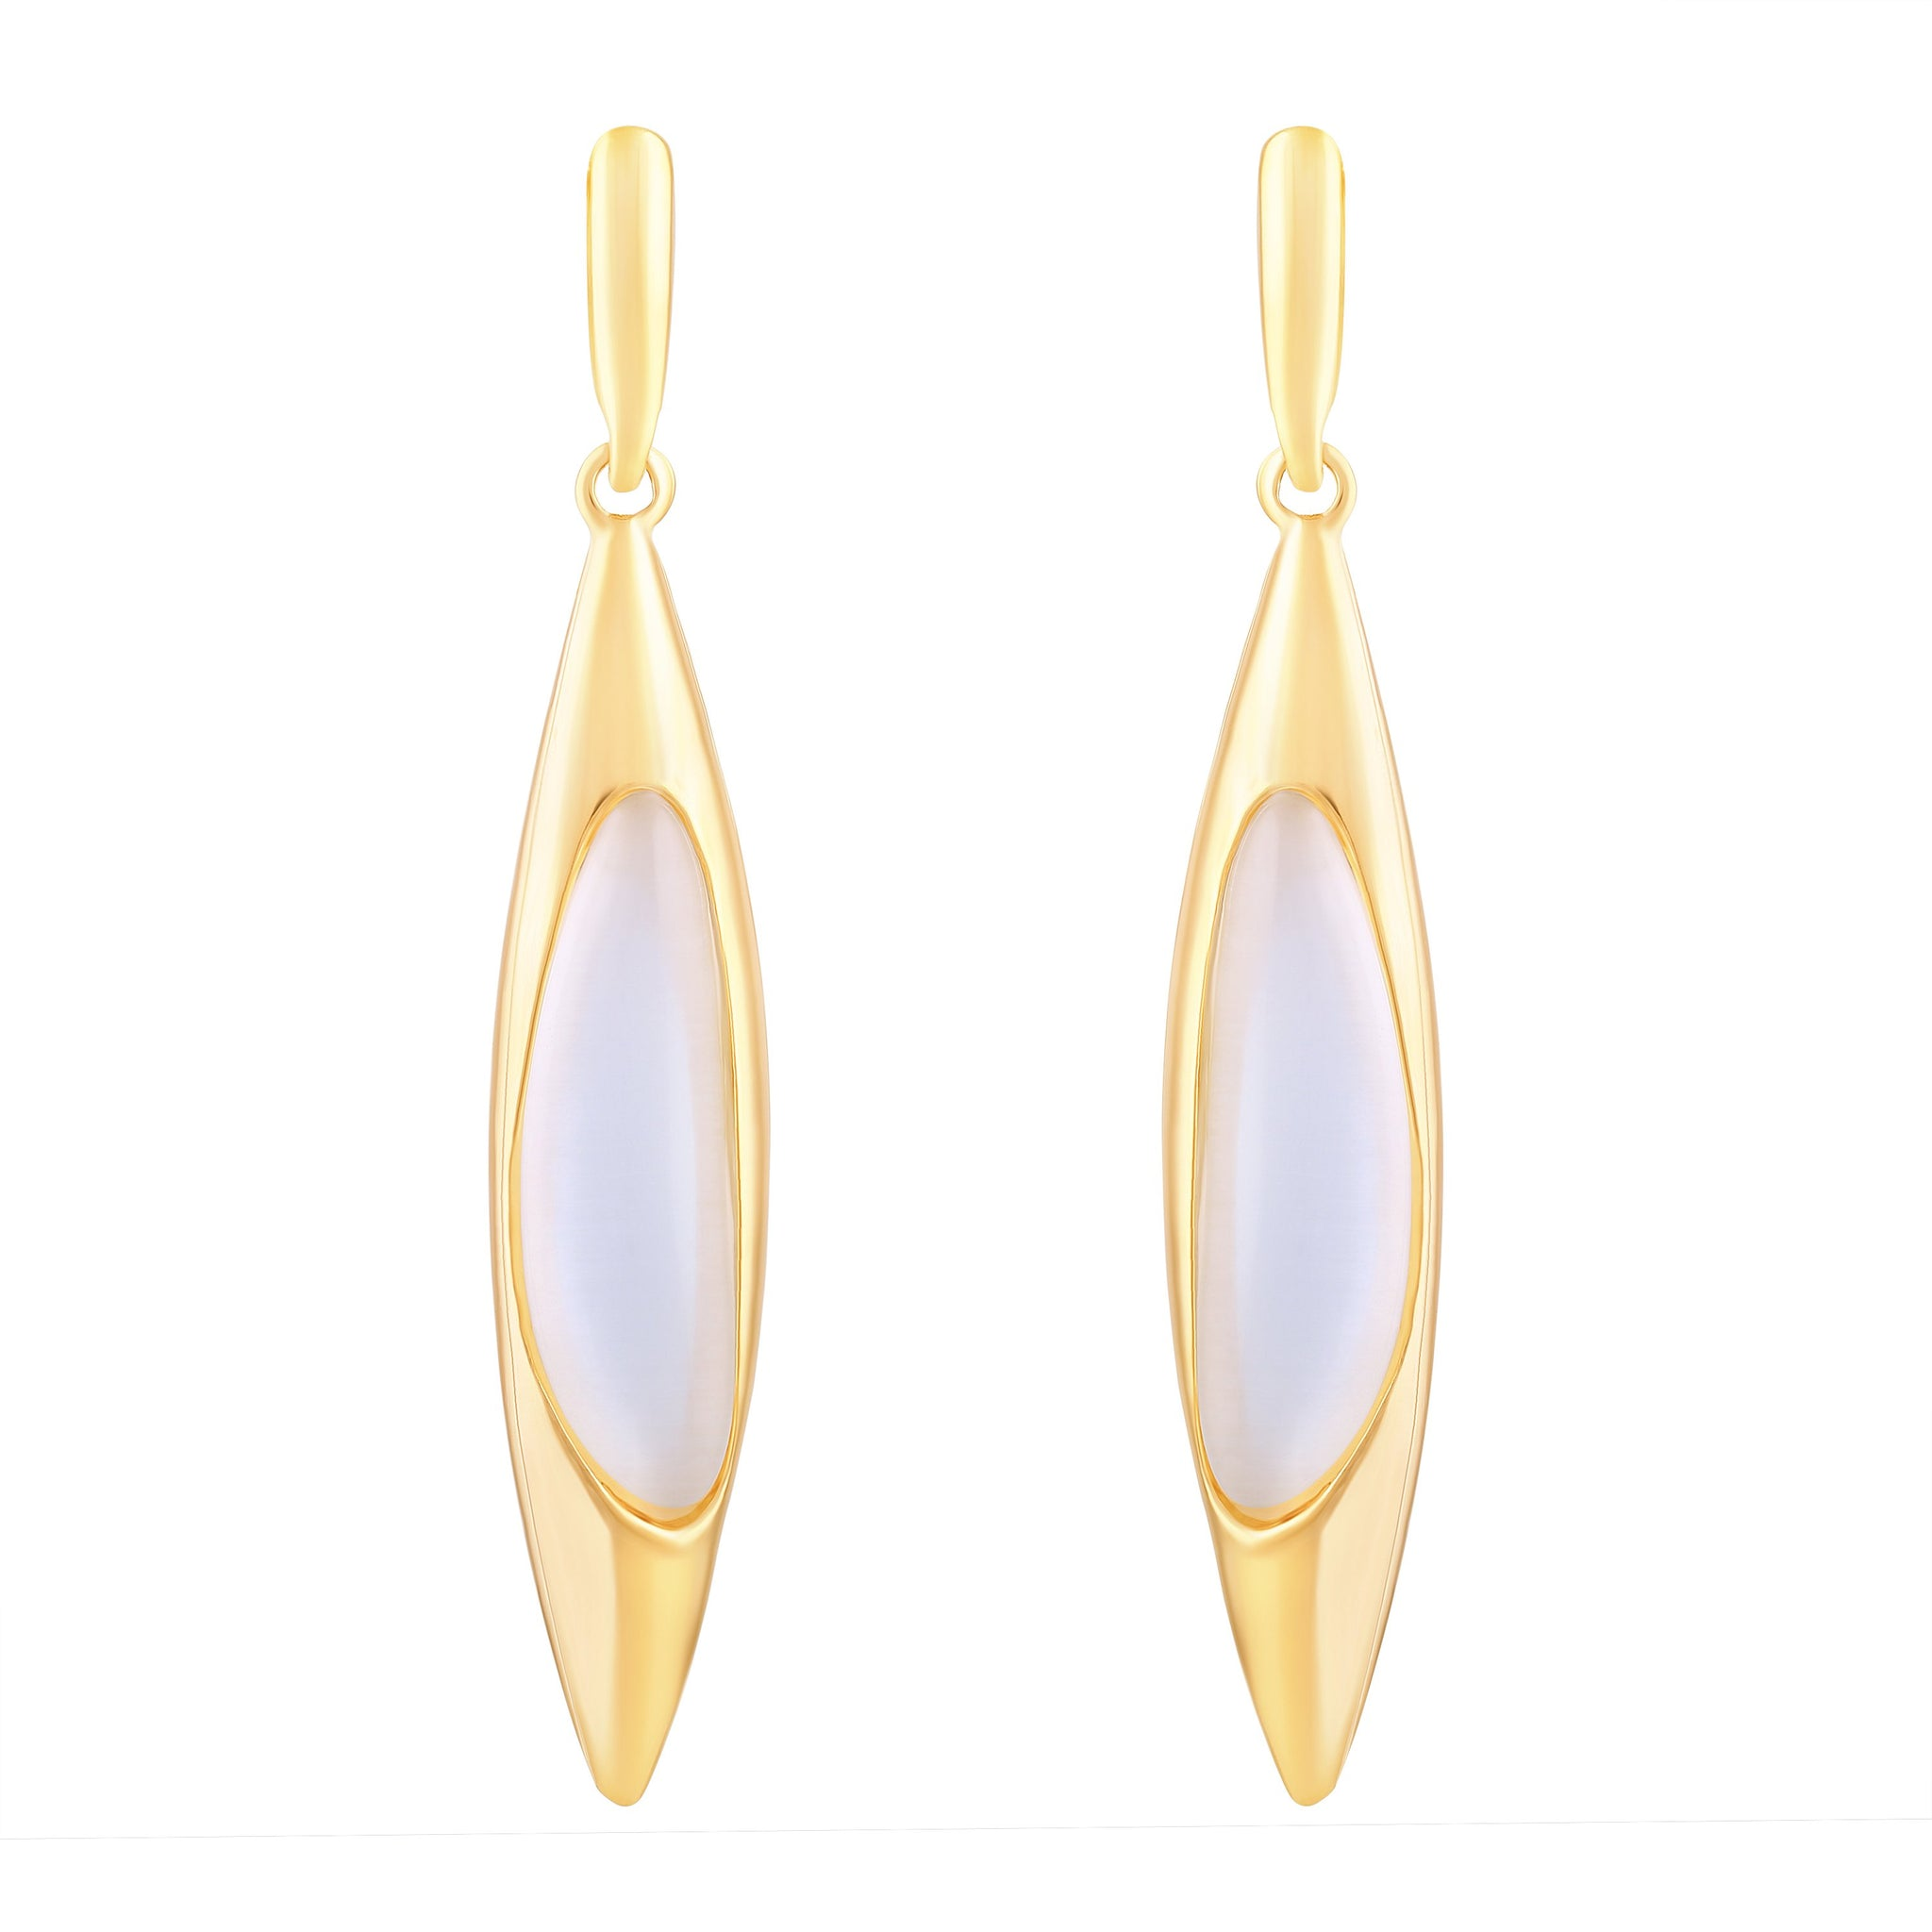 Asmitta Stylish Marquise Shape With Crystal Gold Plated Dangle Earring For Women